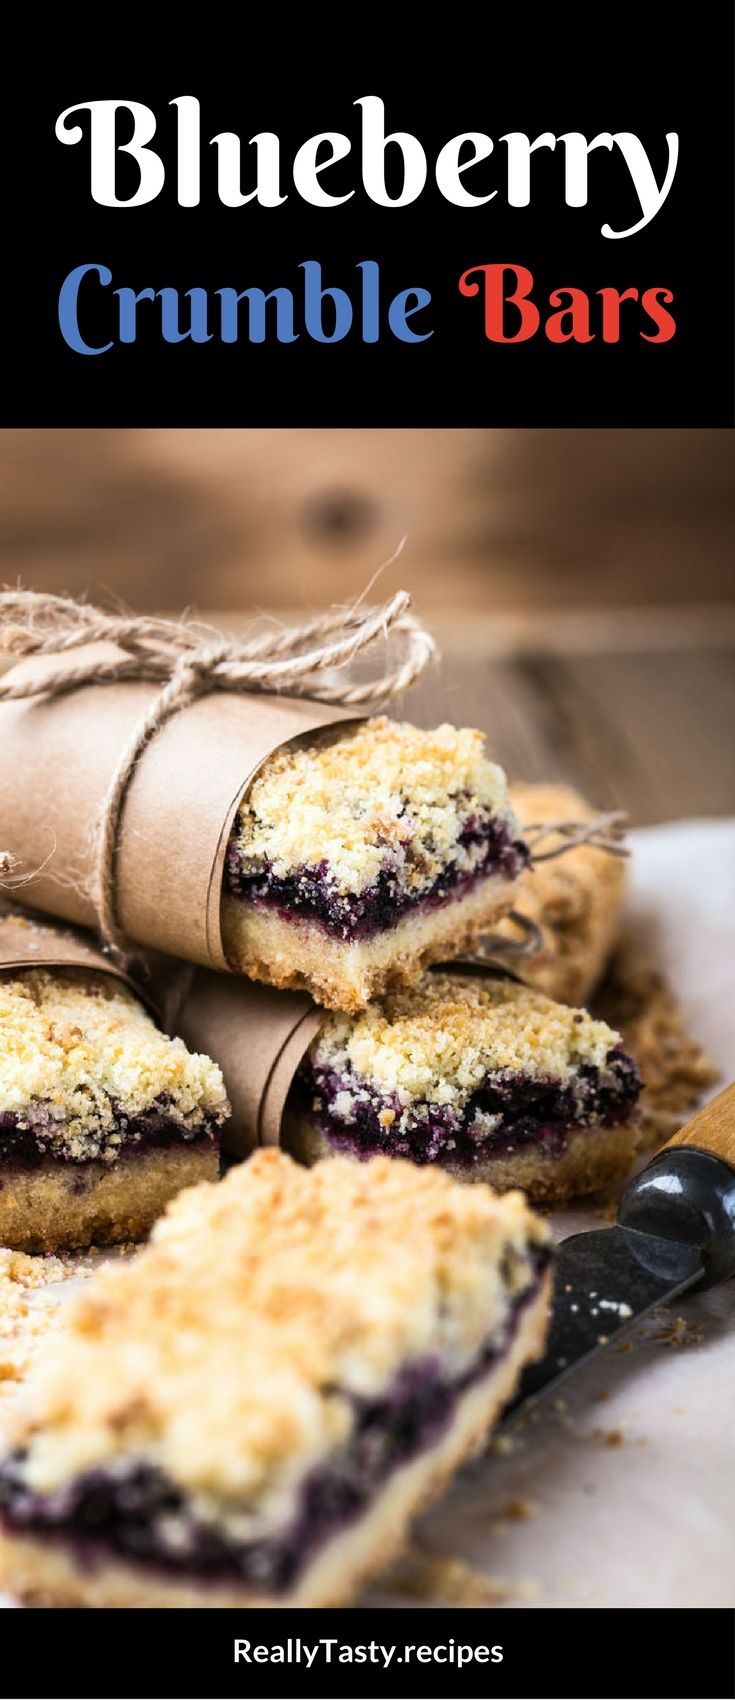 These blueberry crumble bars do exactly what the name says…they crumble in your mouth and taste mouth-wateringly delicious. You can't go wrong with blueberry, so these are well worth baking up.